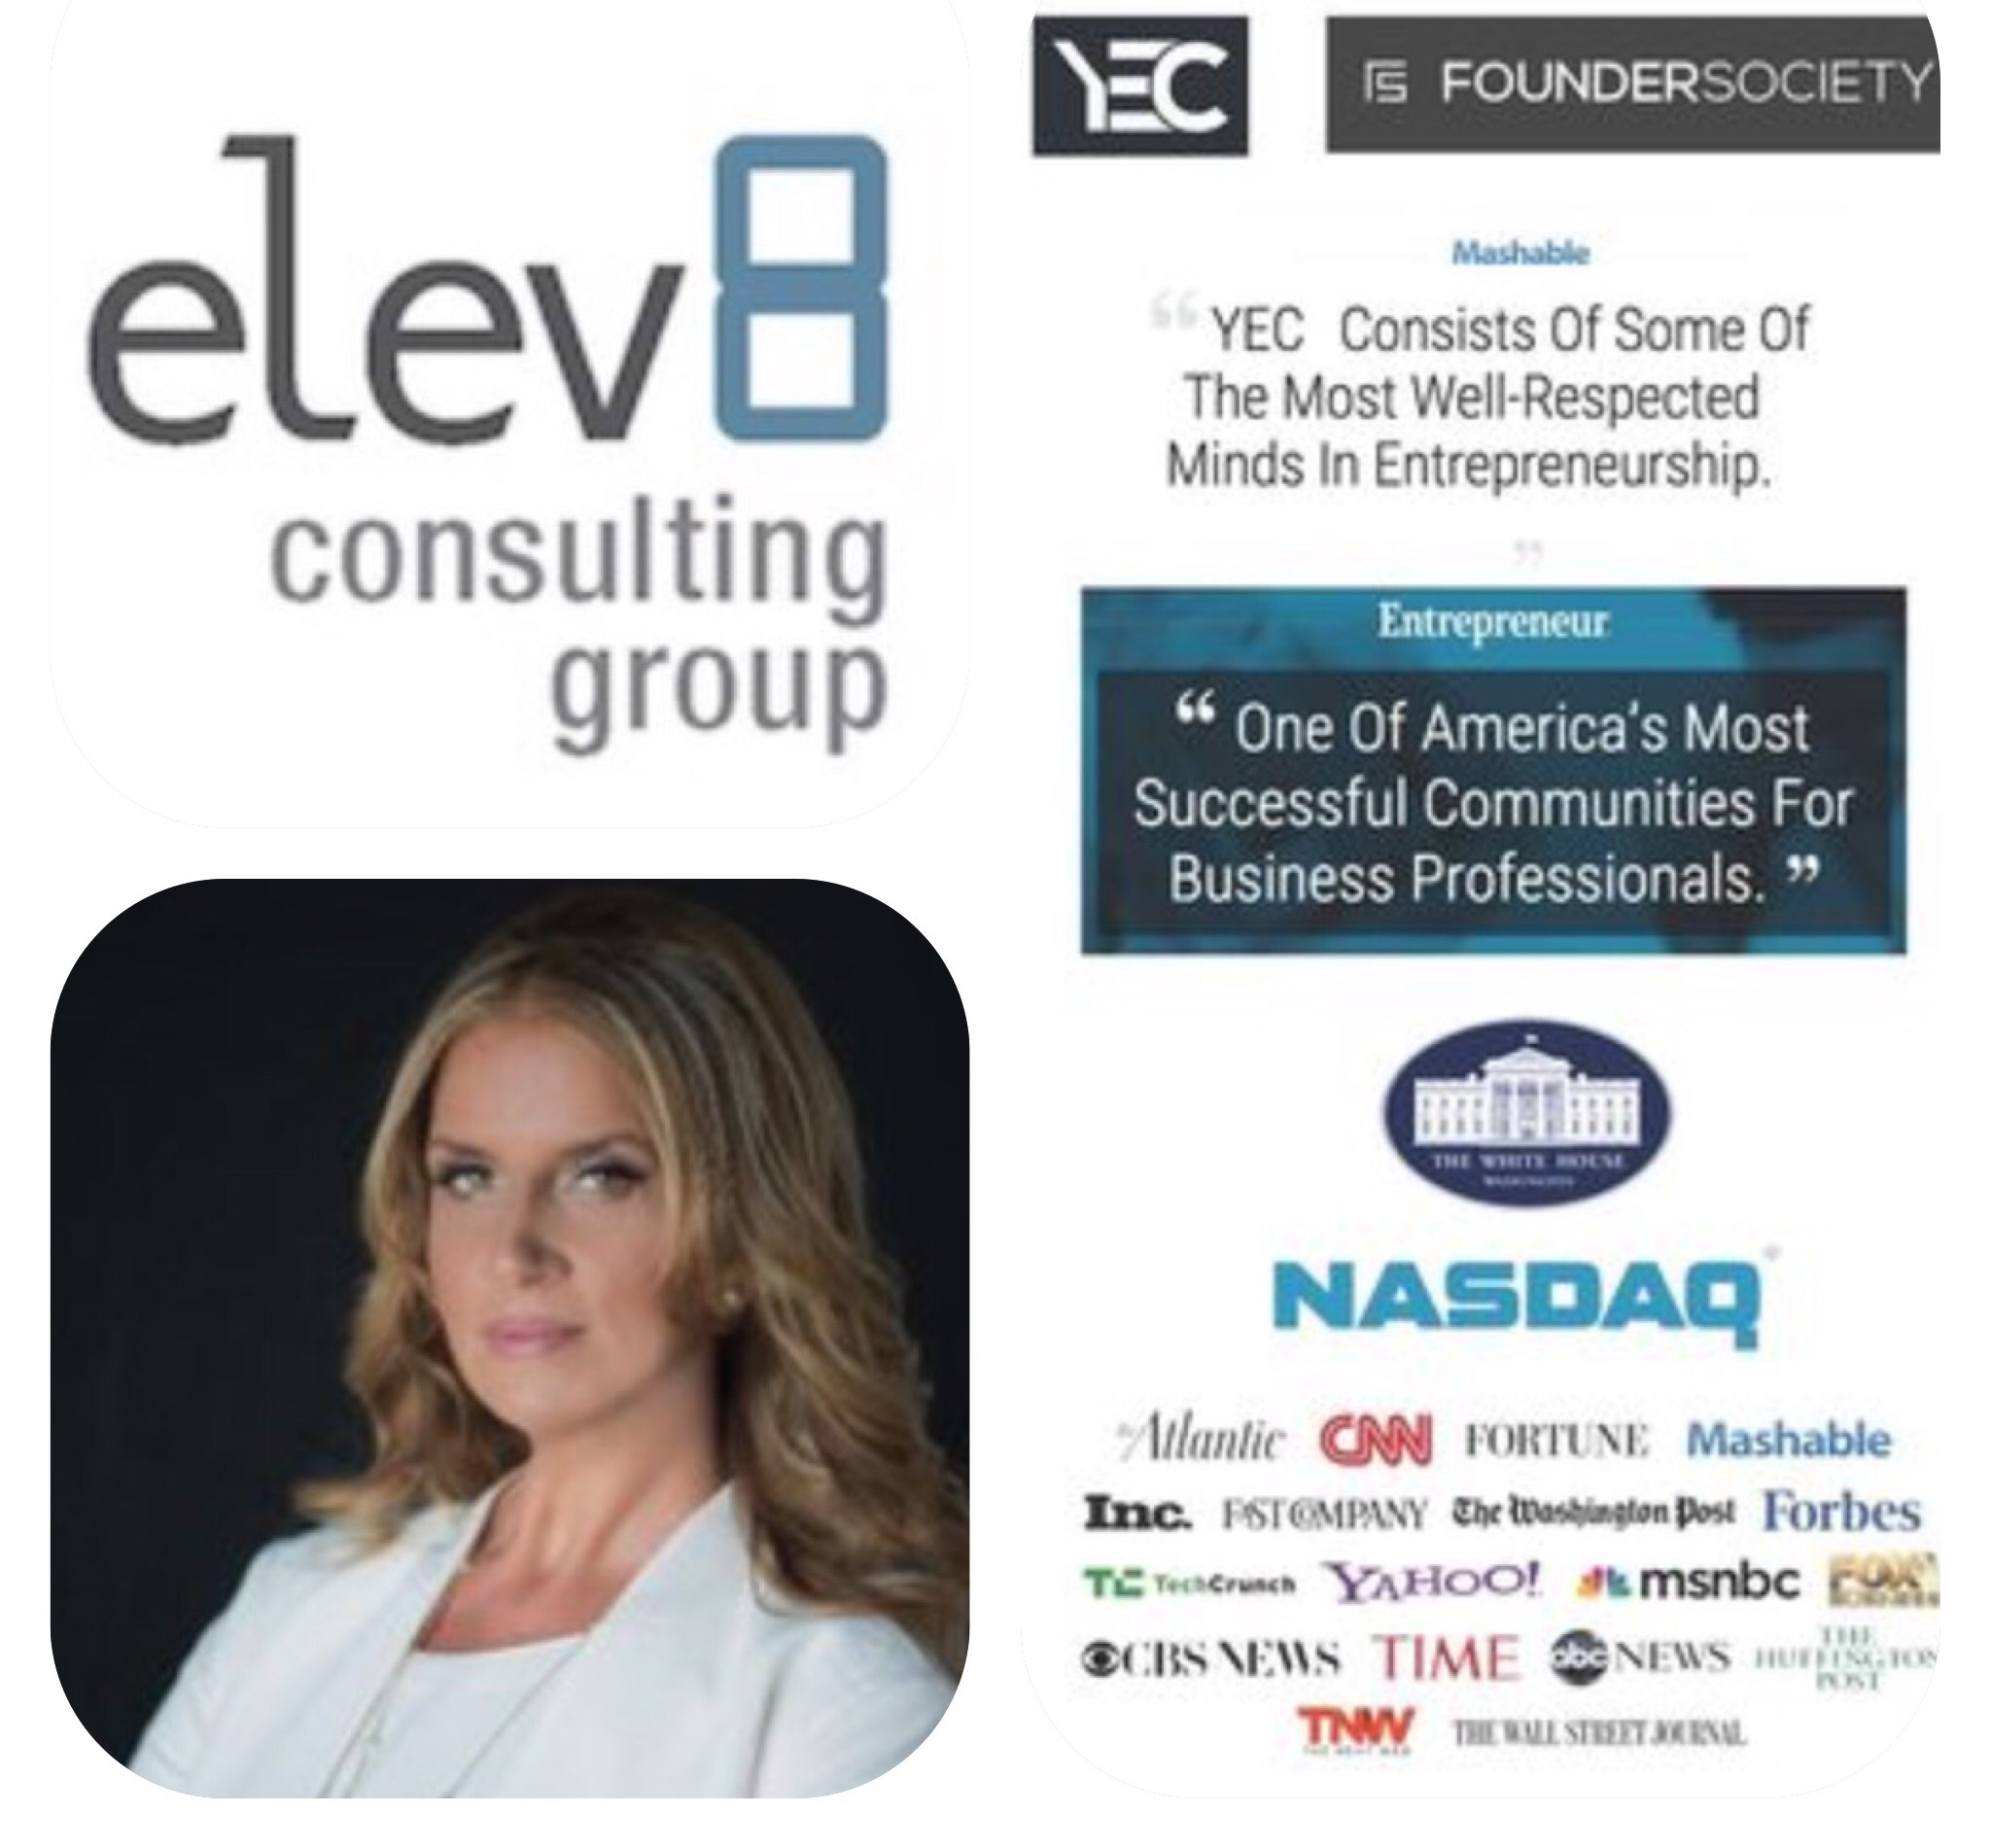 Entrepreneurial Tips By YEC Founder Society Members Featuring Elev8 CEO Angela Delmedico